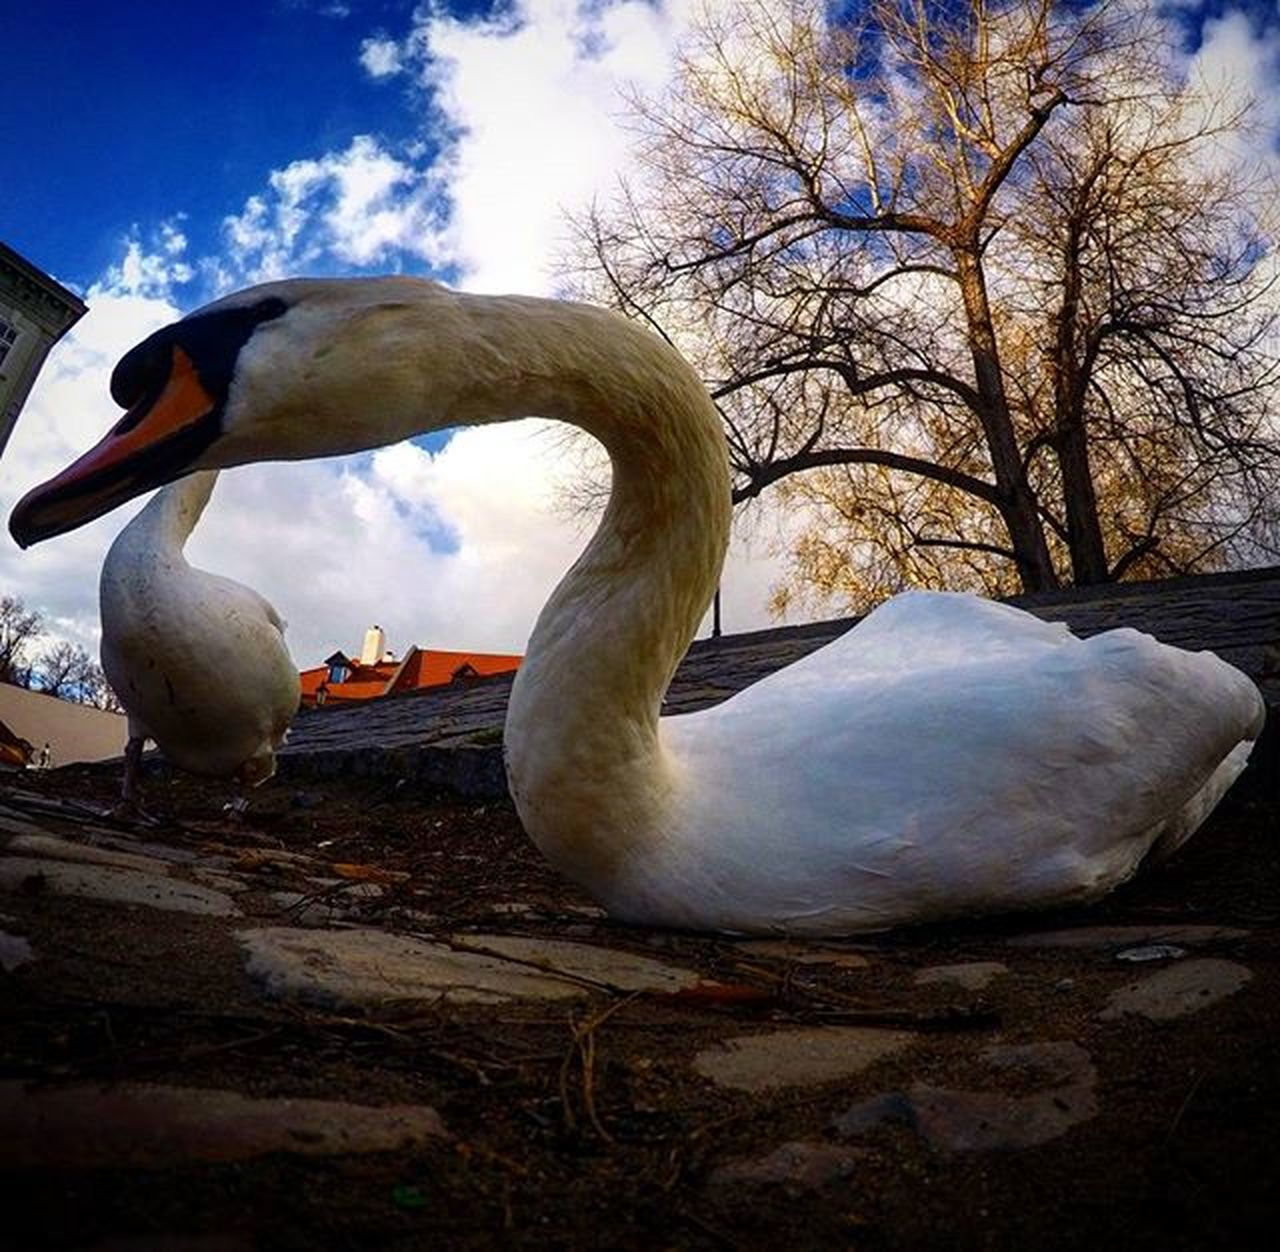 Gopro Cigno Praga Goodday Holiday FreeTime AnimalStyle Trip Travel Memories Walking Picoftheday Nature Swan Swanearth River Waiting Winter Clouds Relax Yesterday Beautiful Post Like Bestplace europelovepausagoproworld